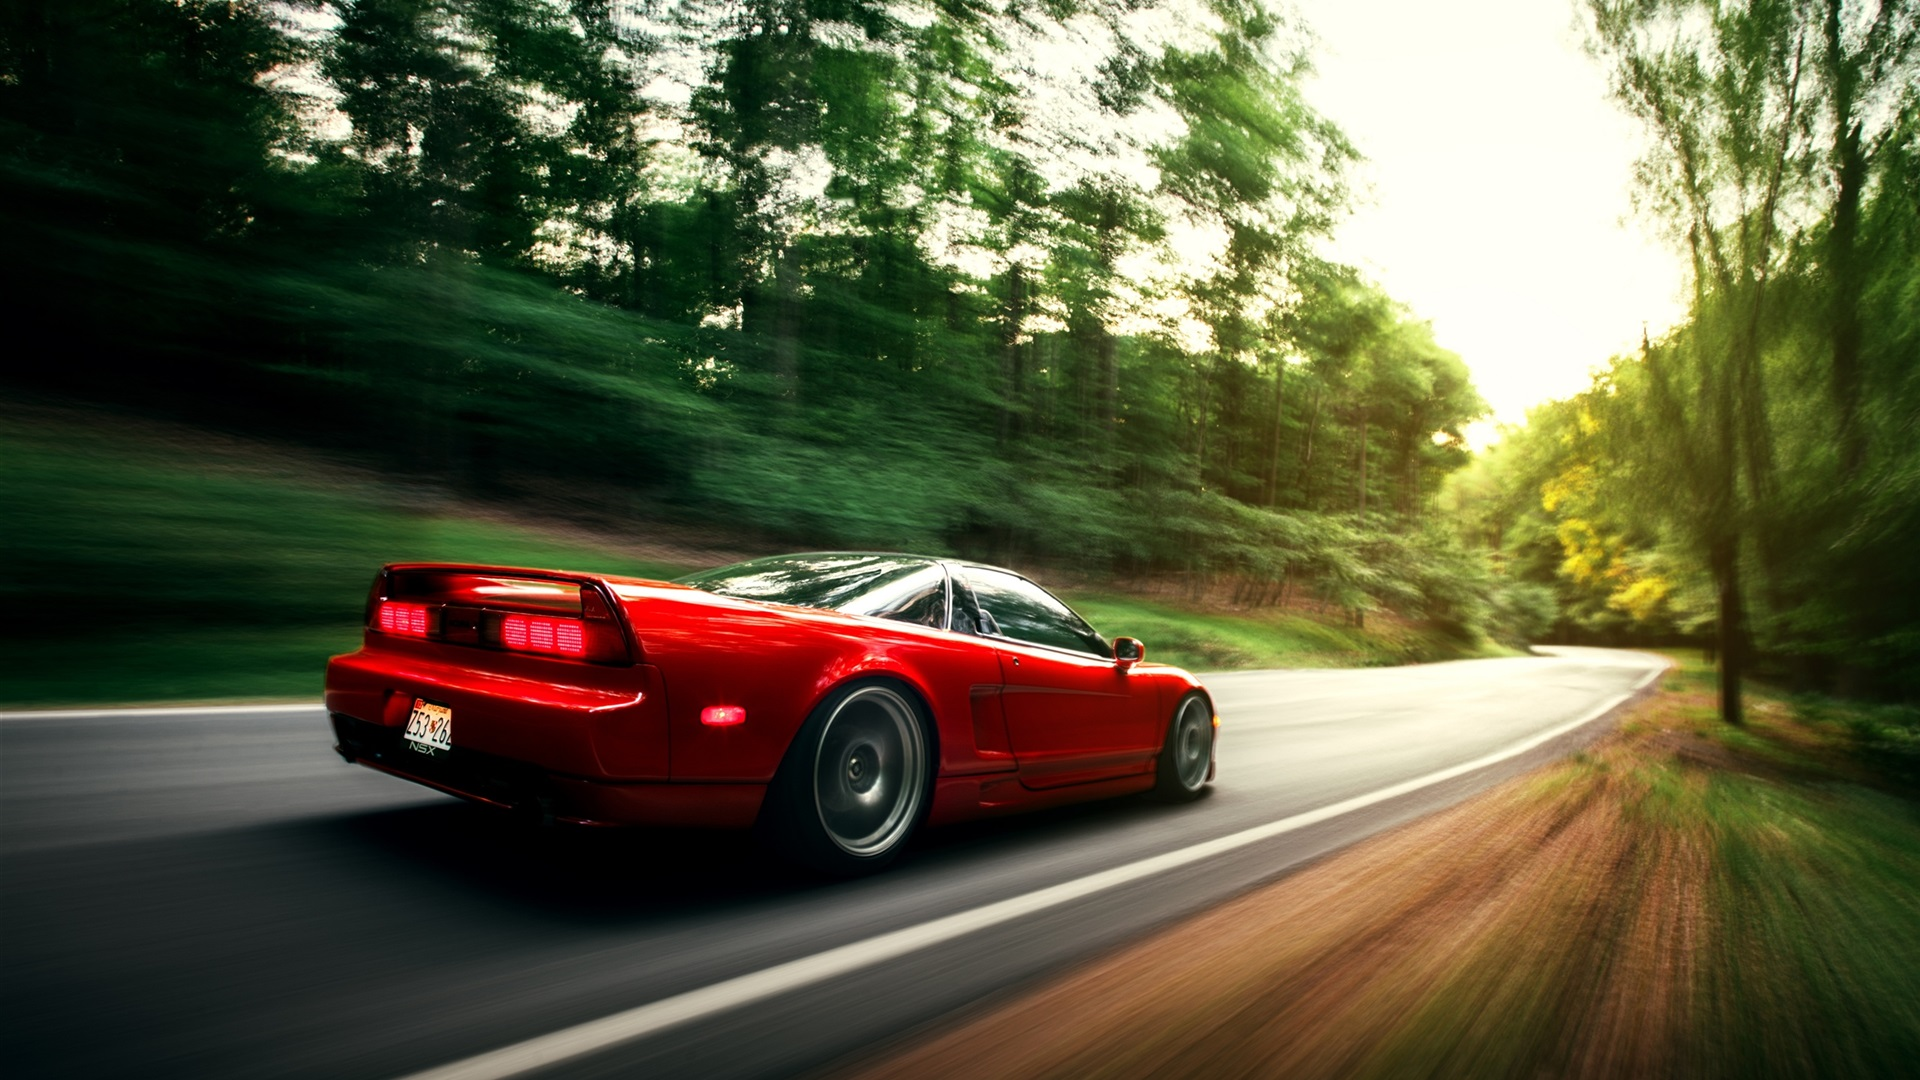 Wallpaper Honda NSX red car in motion 2560x1600 HD Picture, Image